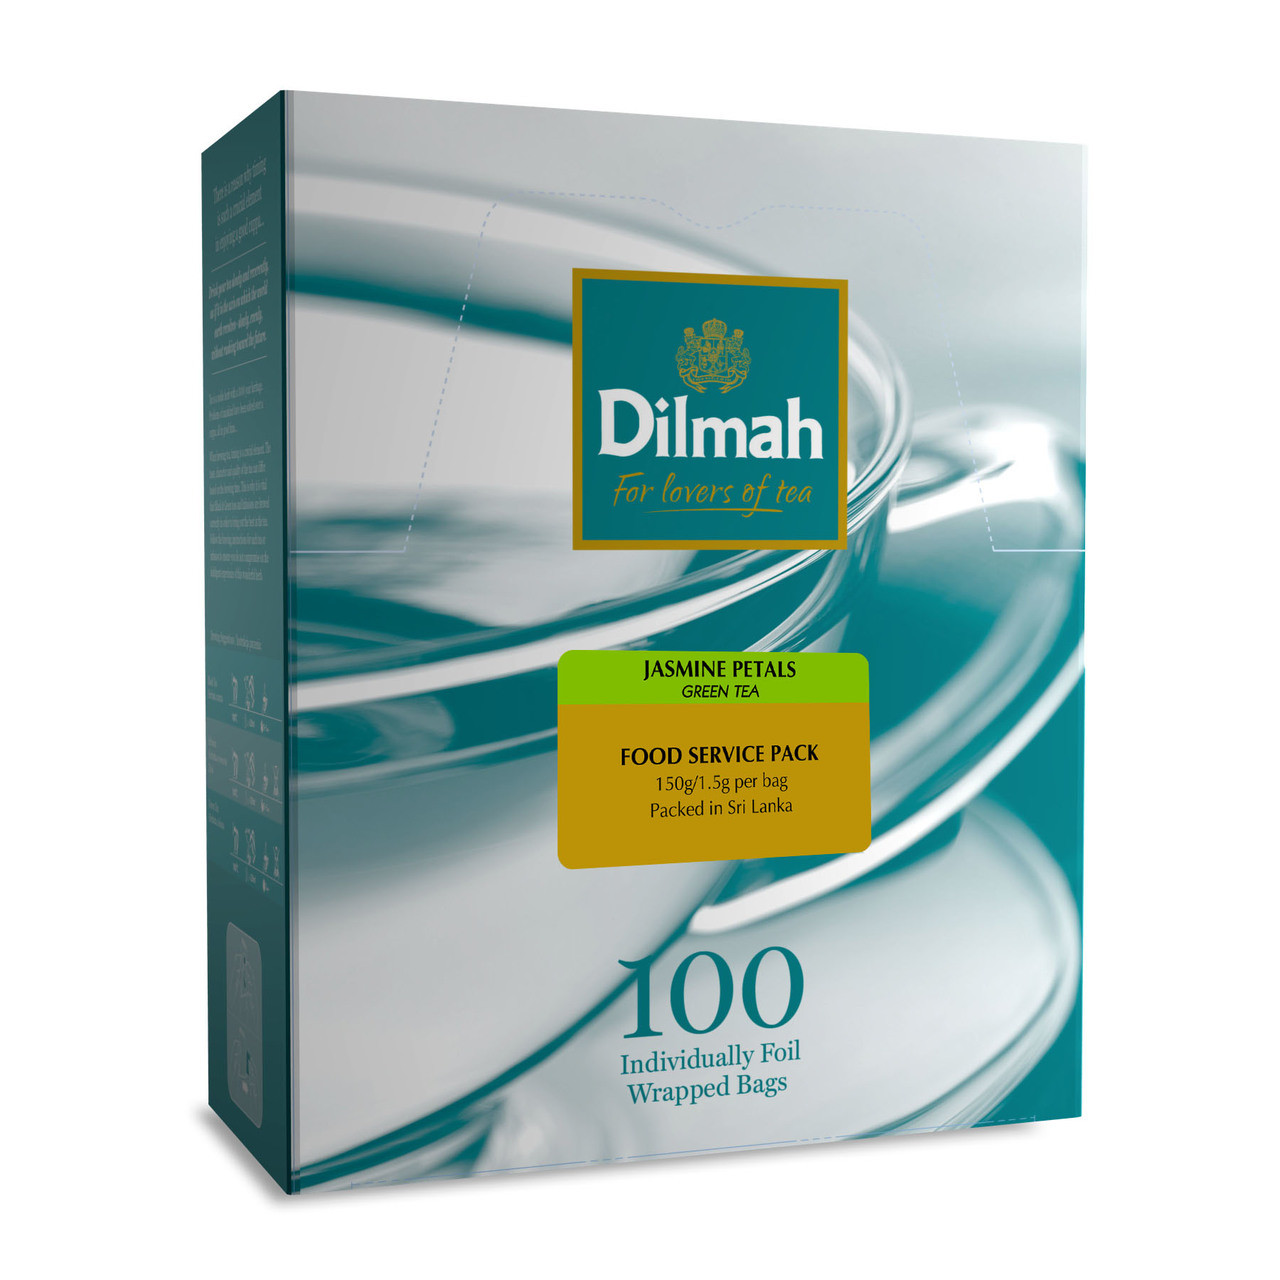 Jasmine green teabags sachet 100e the dilmah shop image 1 izmirmasajfo Images